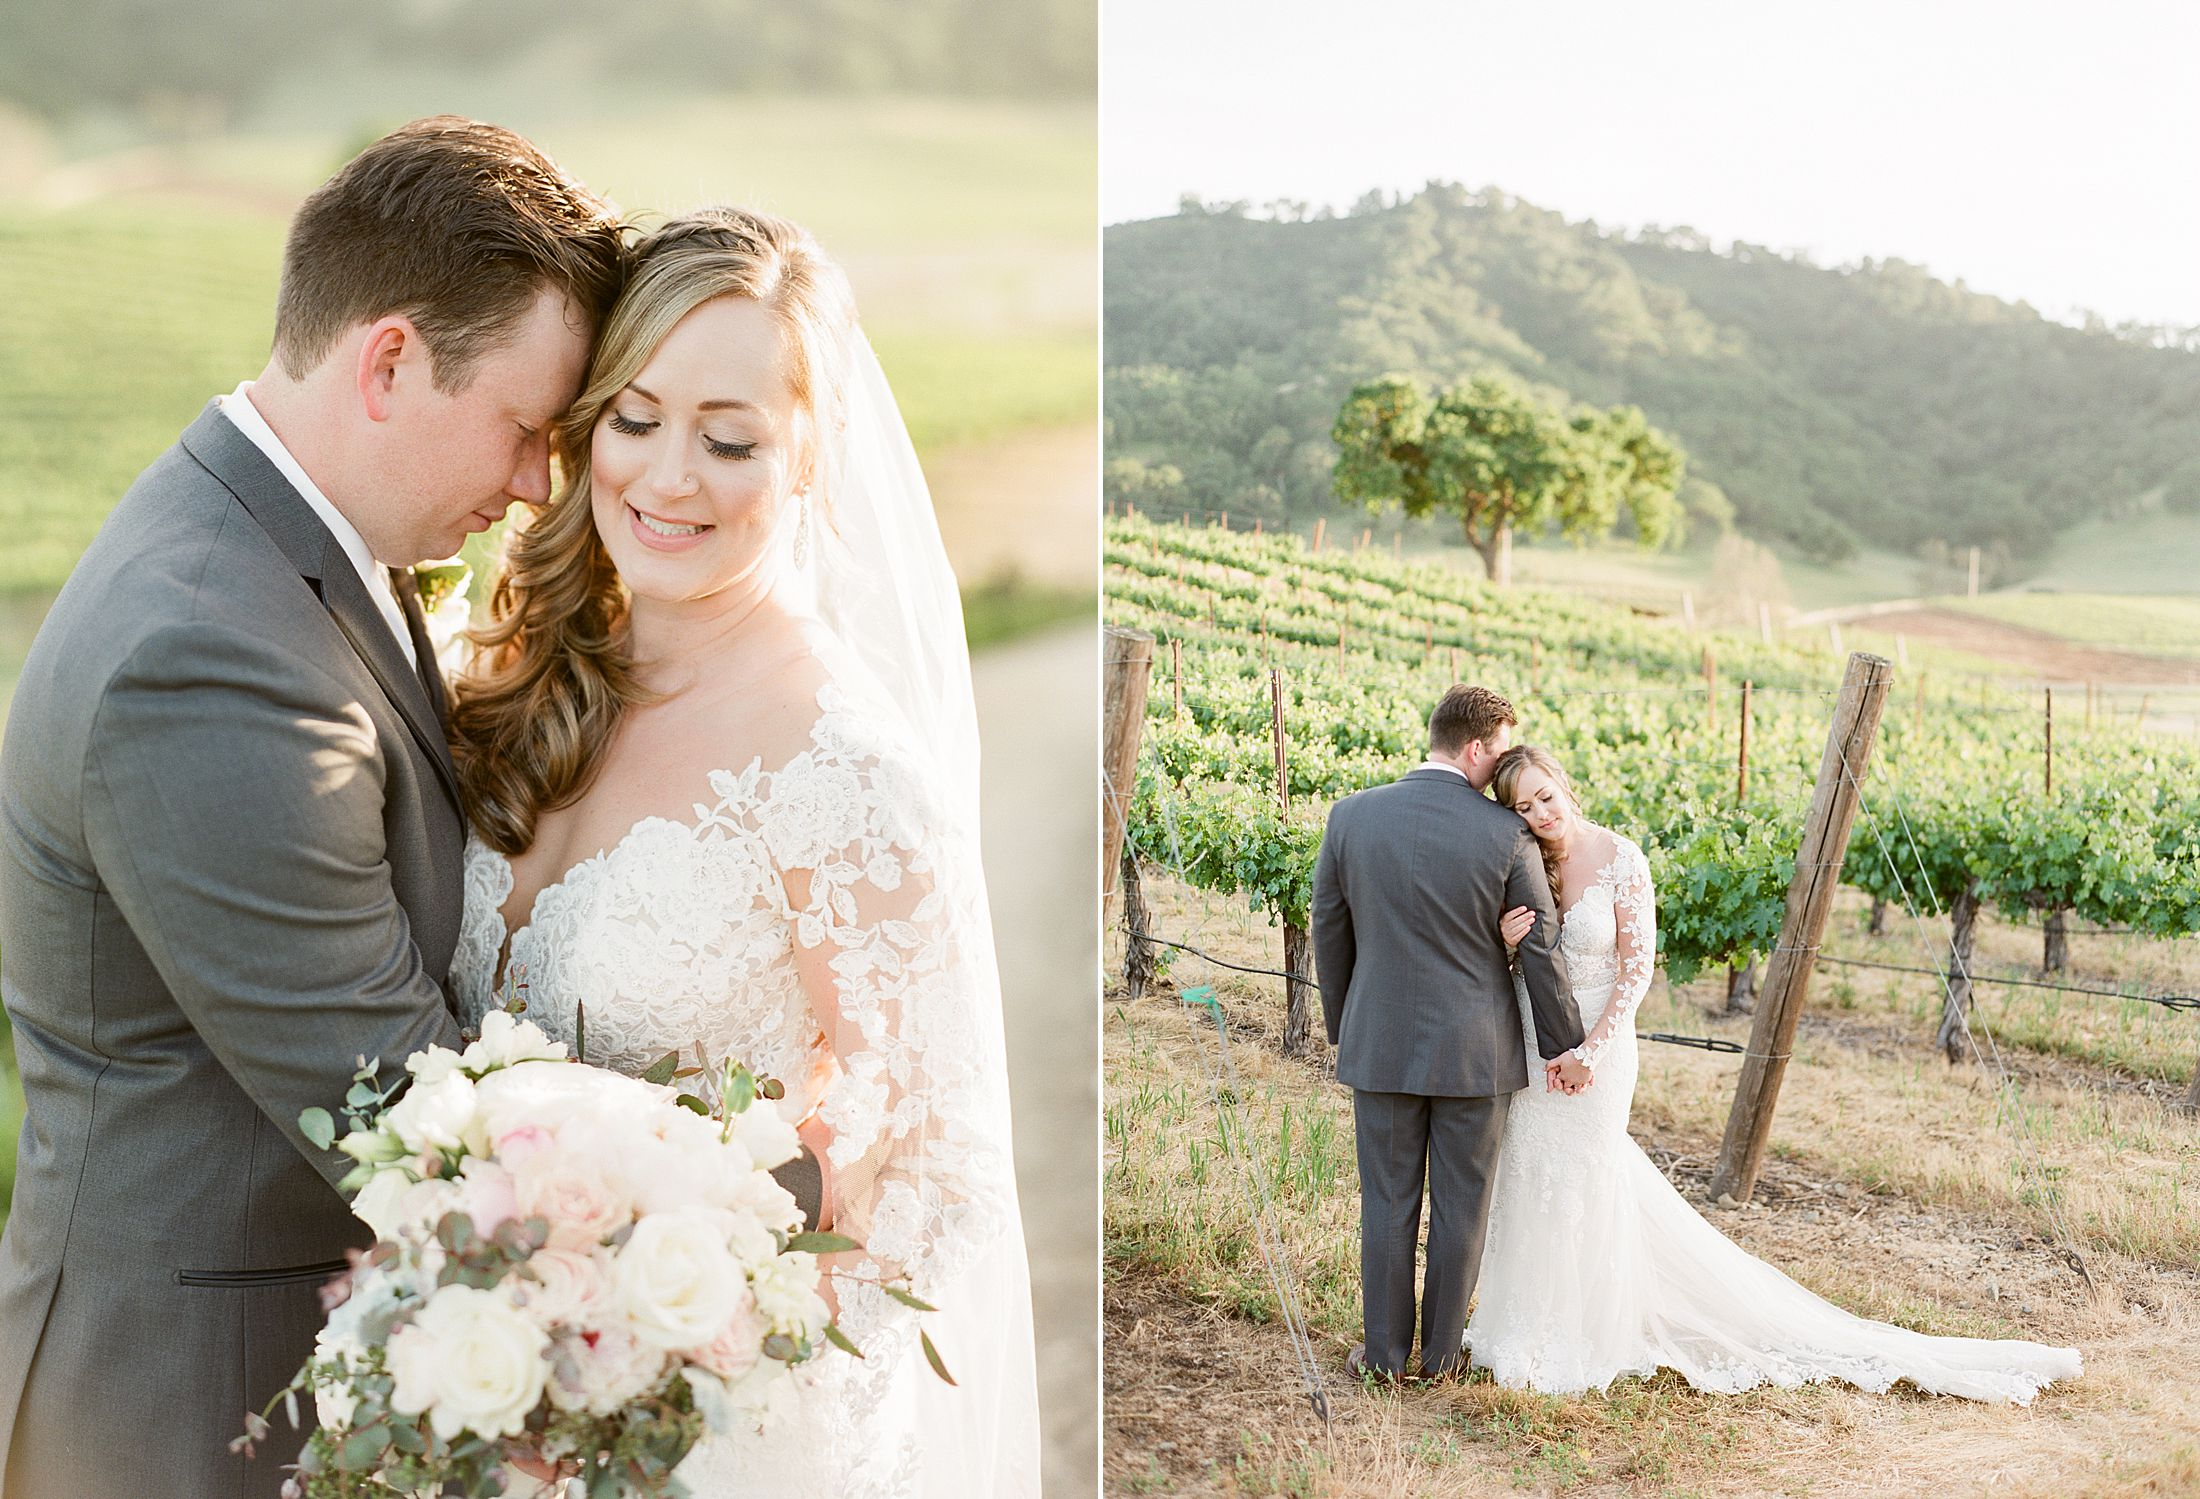 Clos LaChance Winery Wedding - Ashley Baumgartner - Kat & Kurt - Morgan Hill Wedding - Winery Wedding - Bay Area Photographer - Sacramento Wedding Photographer_0061.jpg